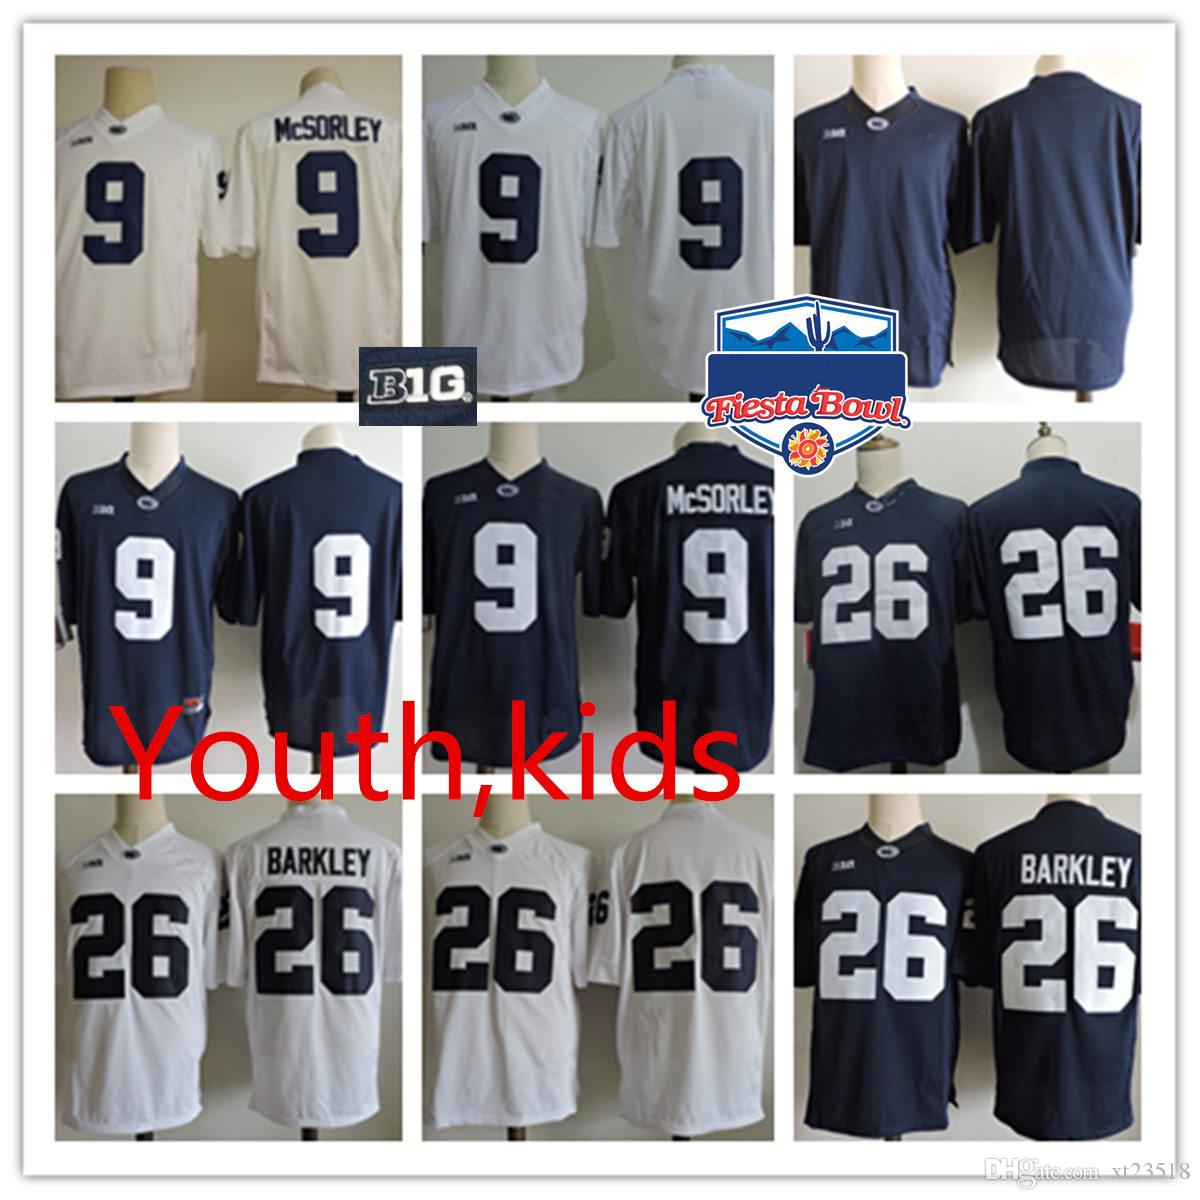 1846df38f Youth Penn State Nittany Lions Trace McSorley College Football Jerseys Kids  NCAA  26 Saquon Barkley PSU Lions Fiesta Bowl Football Jersey Trace McSorley  ...